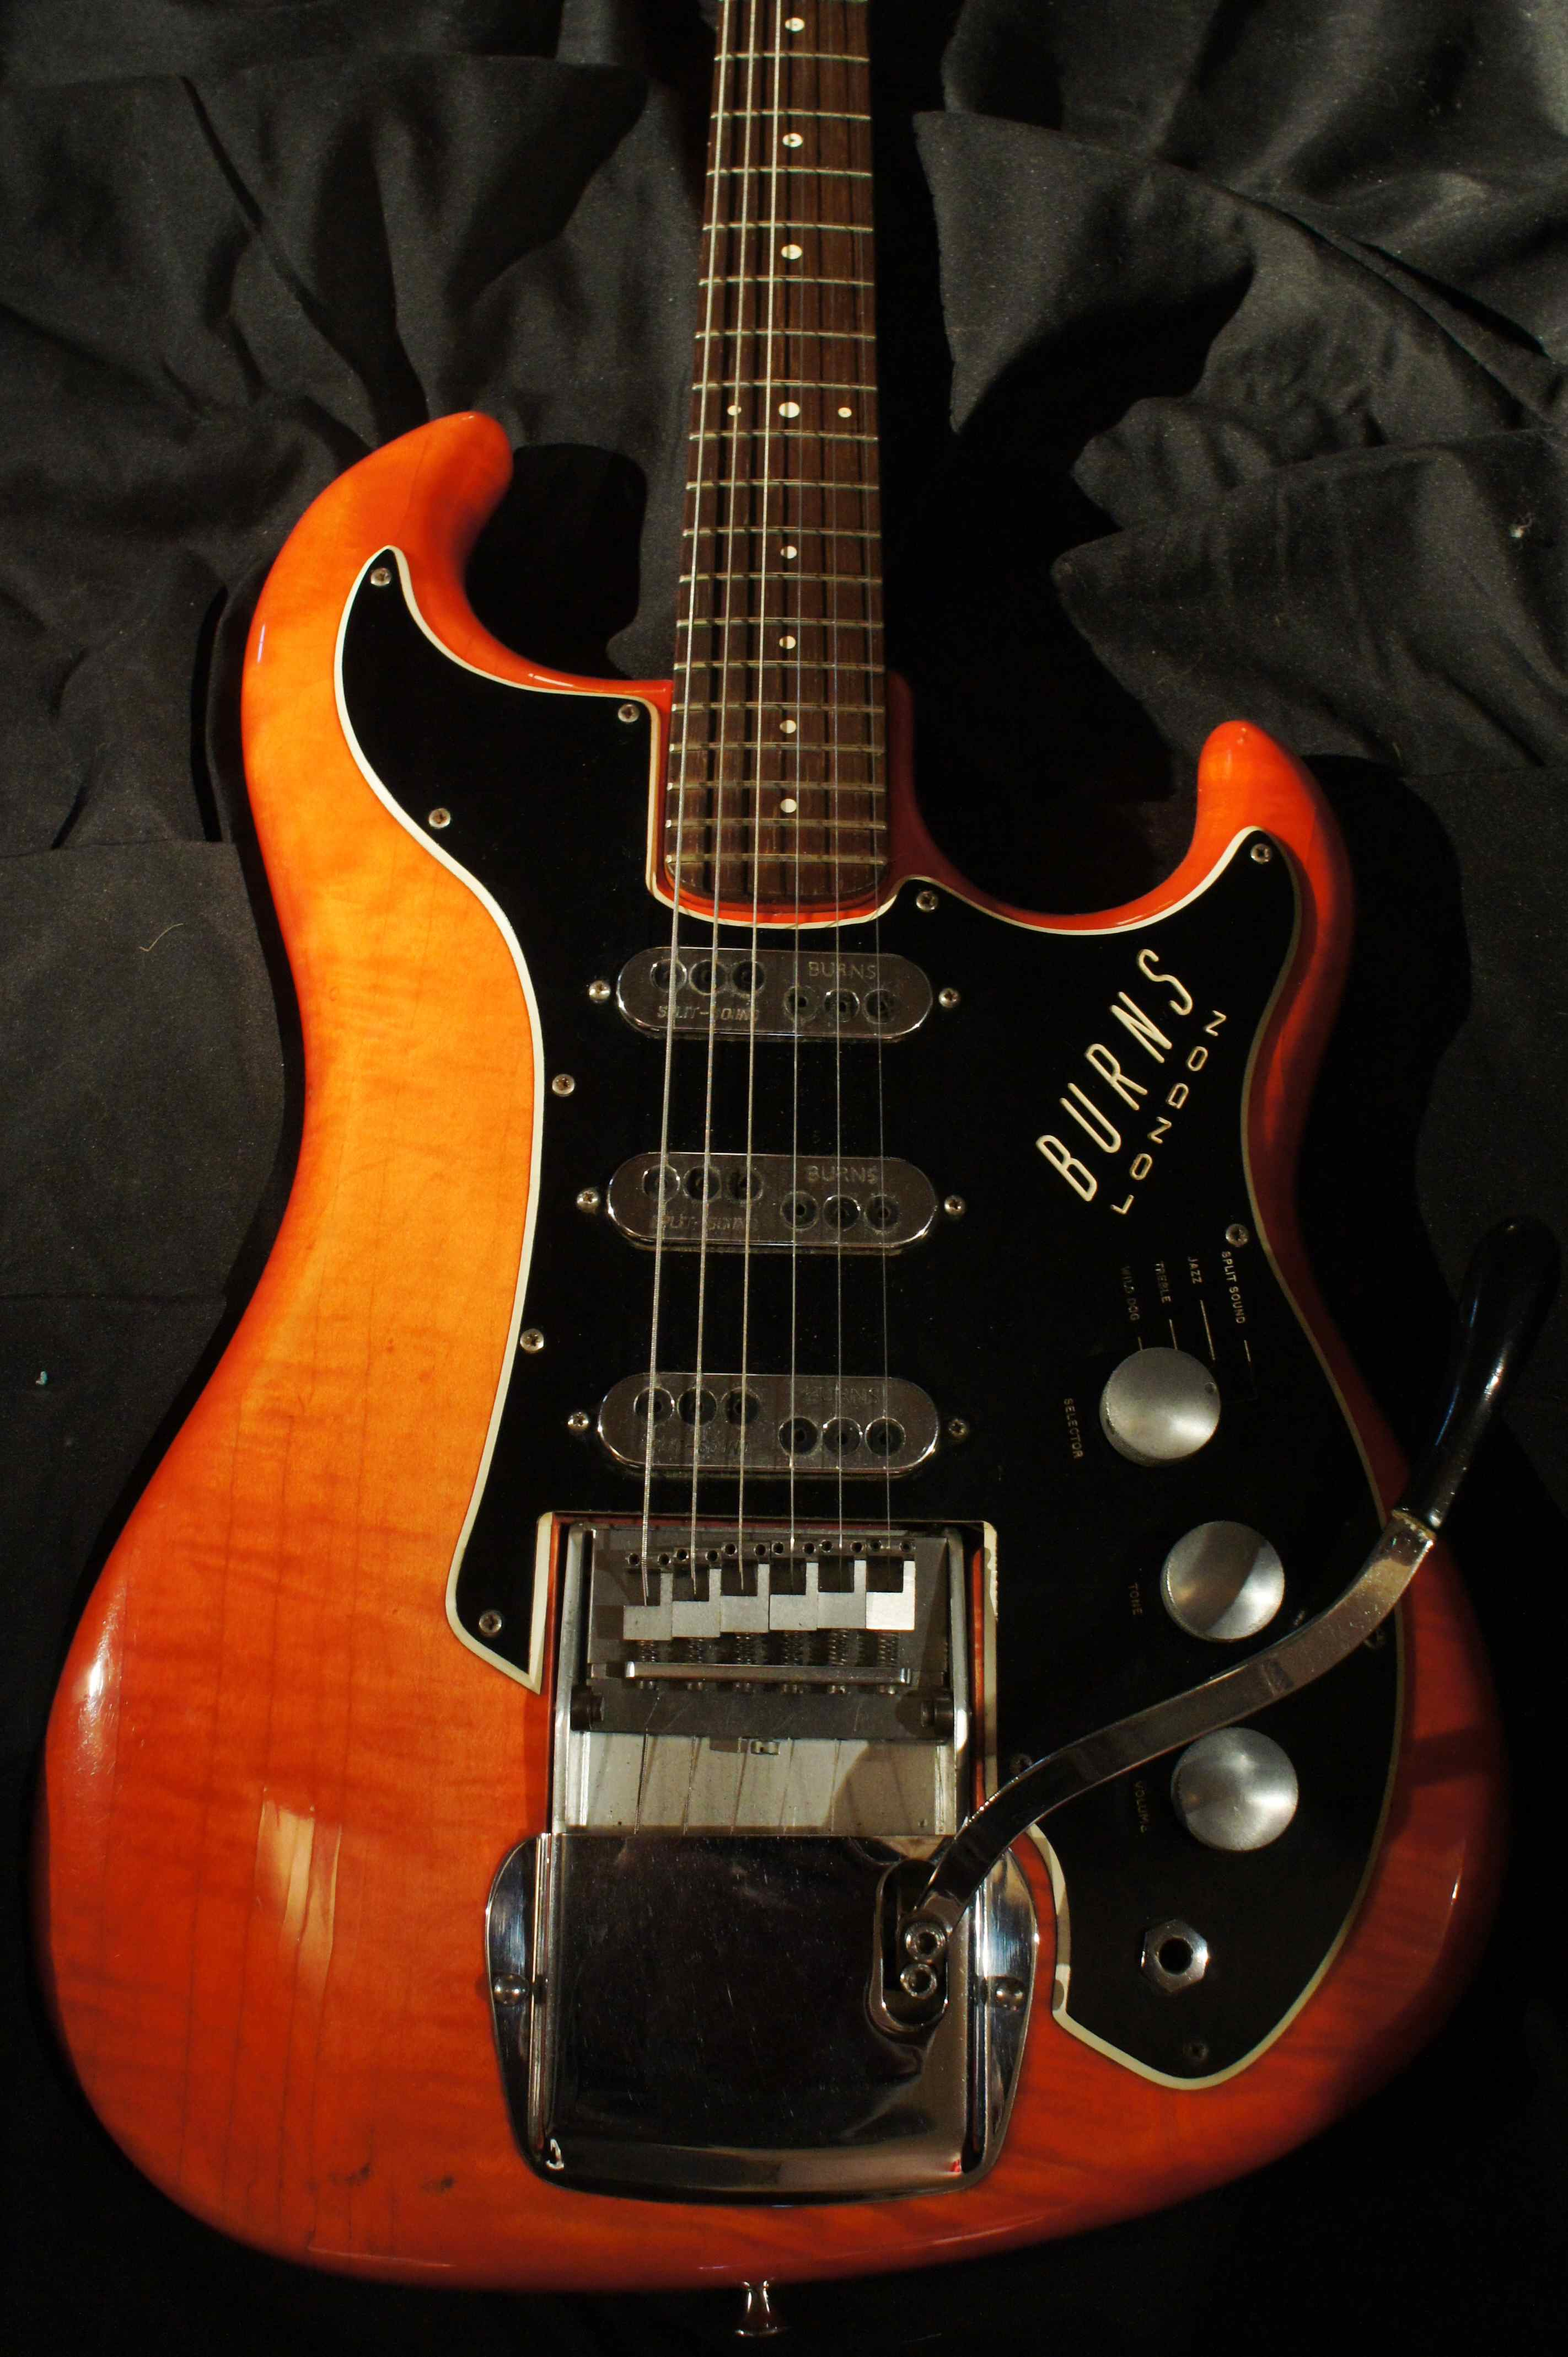 Burns Guitars were enormously well received in Britain before the British invaded the USA As I have mentioned before in the 1950 s through the 1960 s